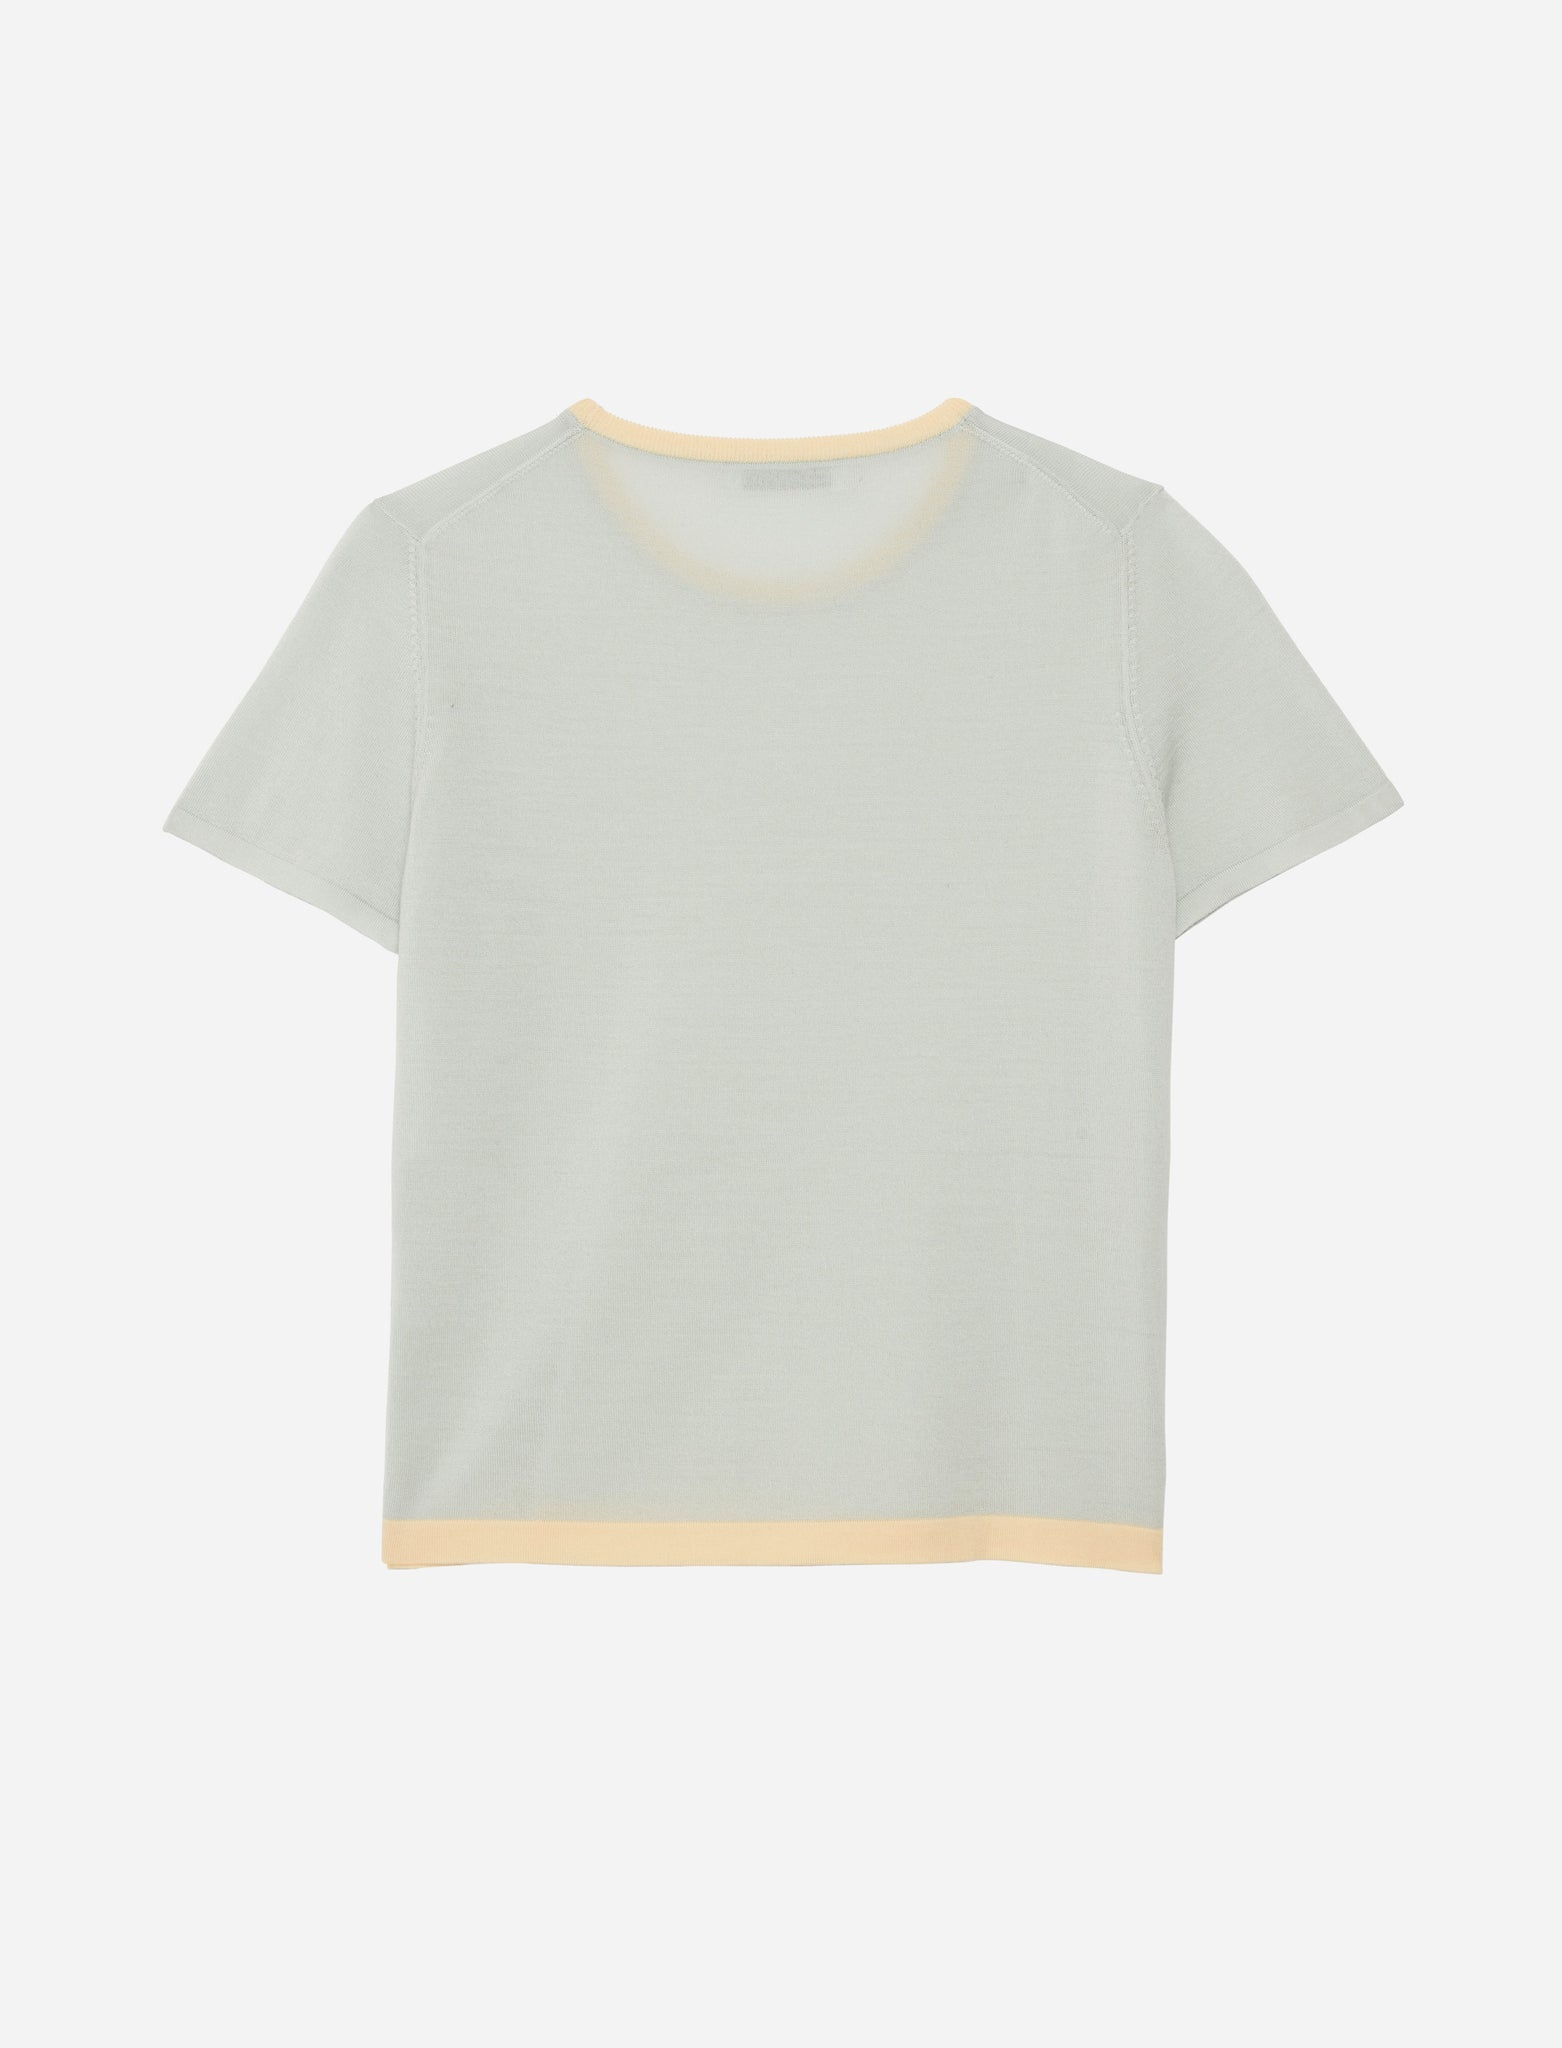 EASTON T-SHIRT IN NEPTUNE MINT